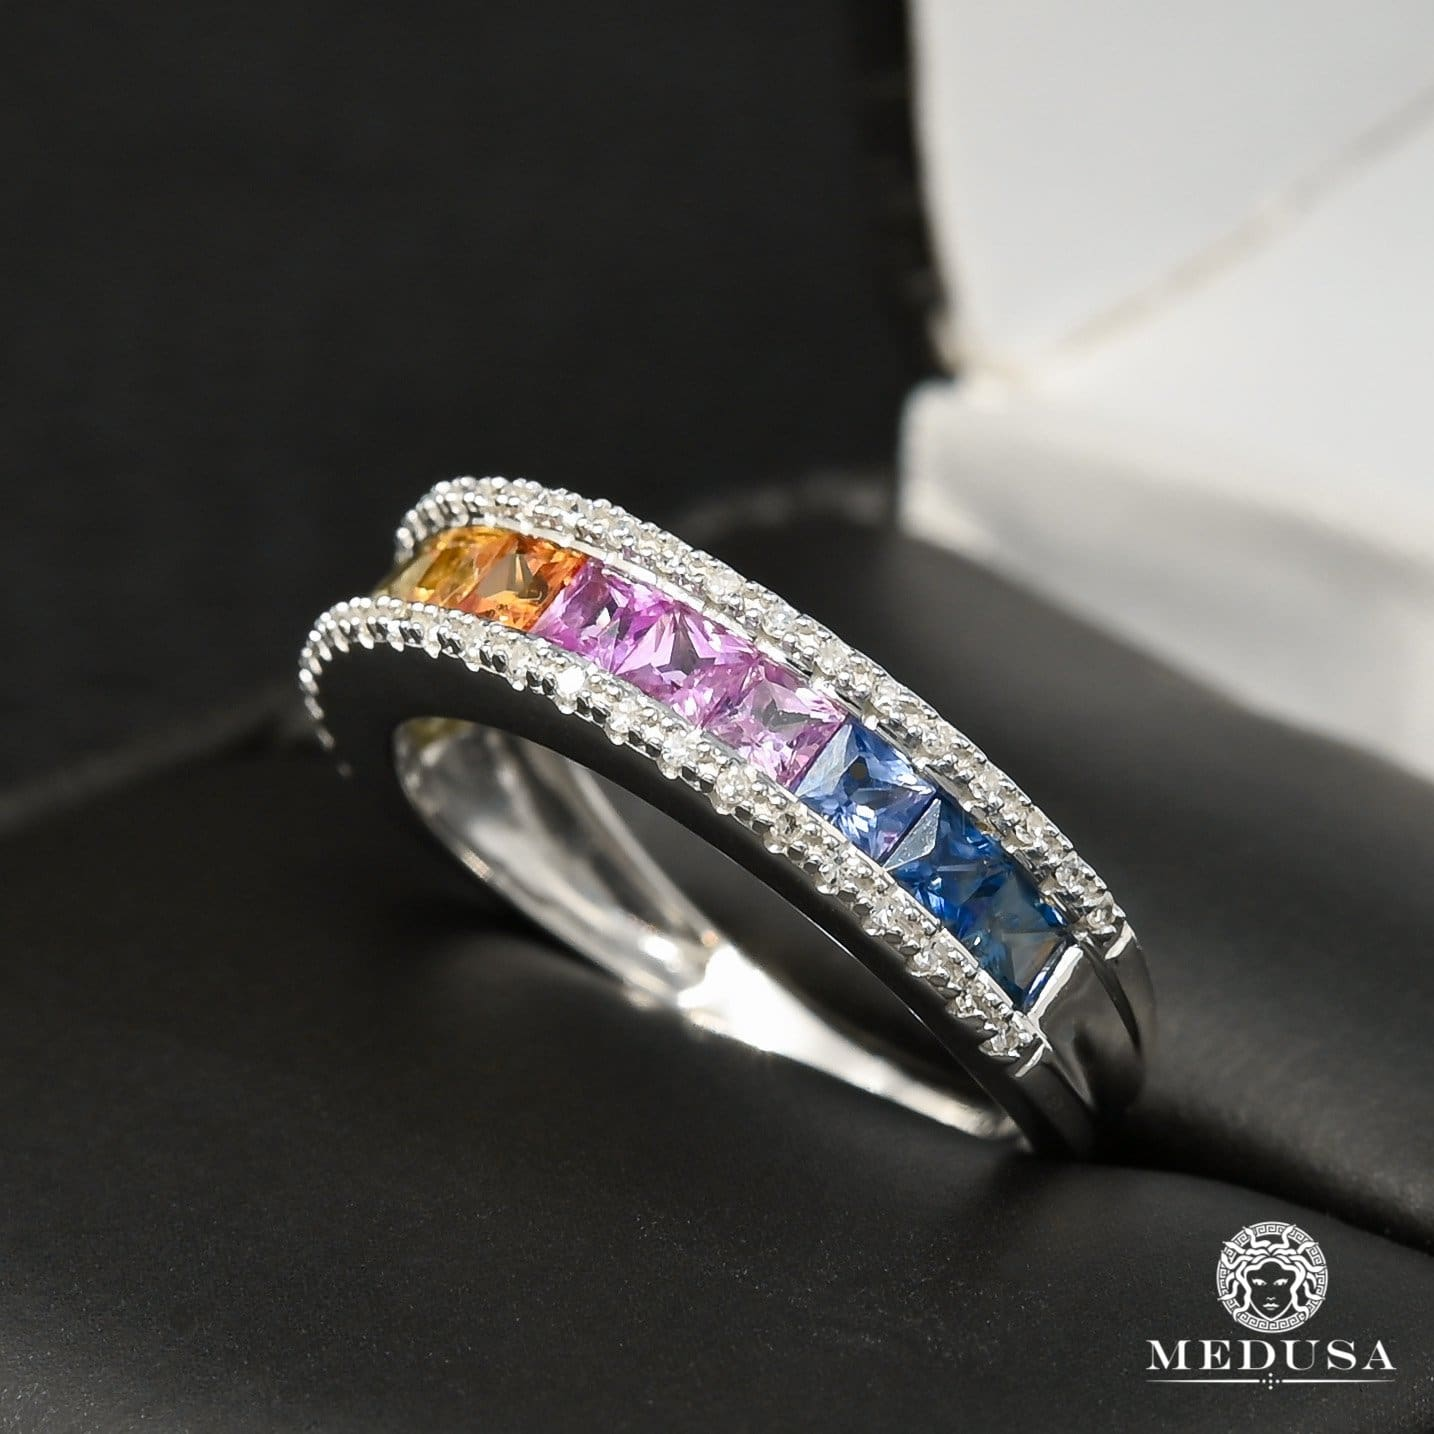 Bague à Diamants en Or 10K | Bague Femme Rainbow F1 - Saphir Or Blanc